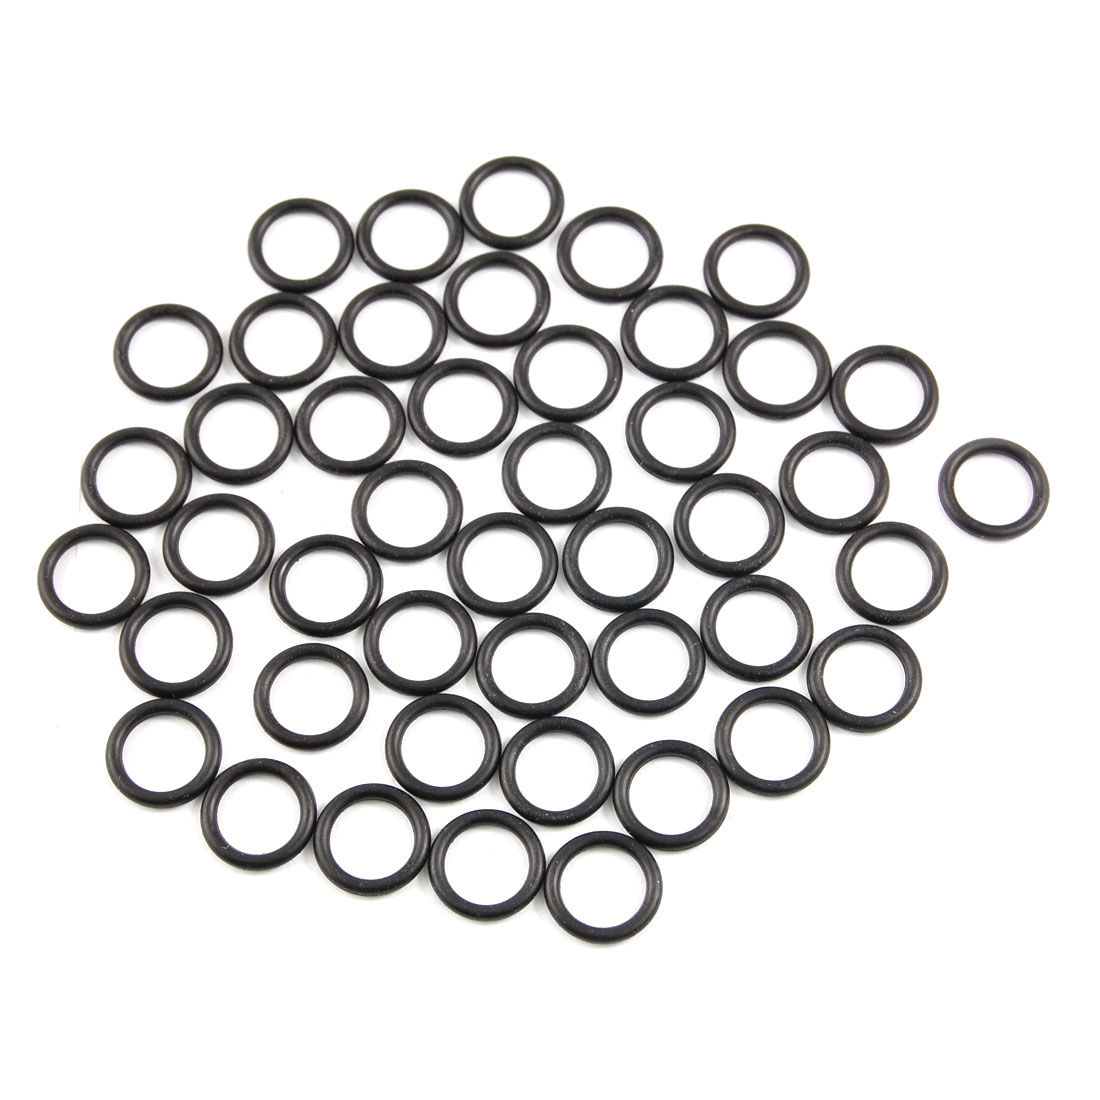 50 Pcs NBR 14mm x 2mm Hole Sealing O Rings Gaskets Washers for Mechanical